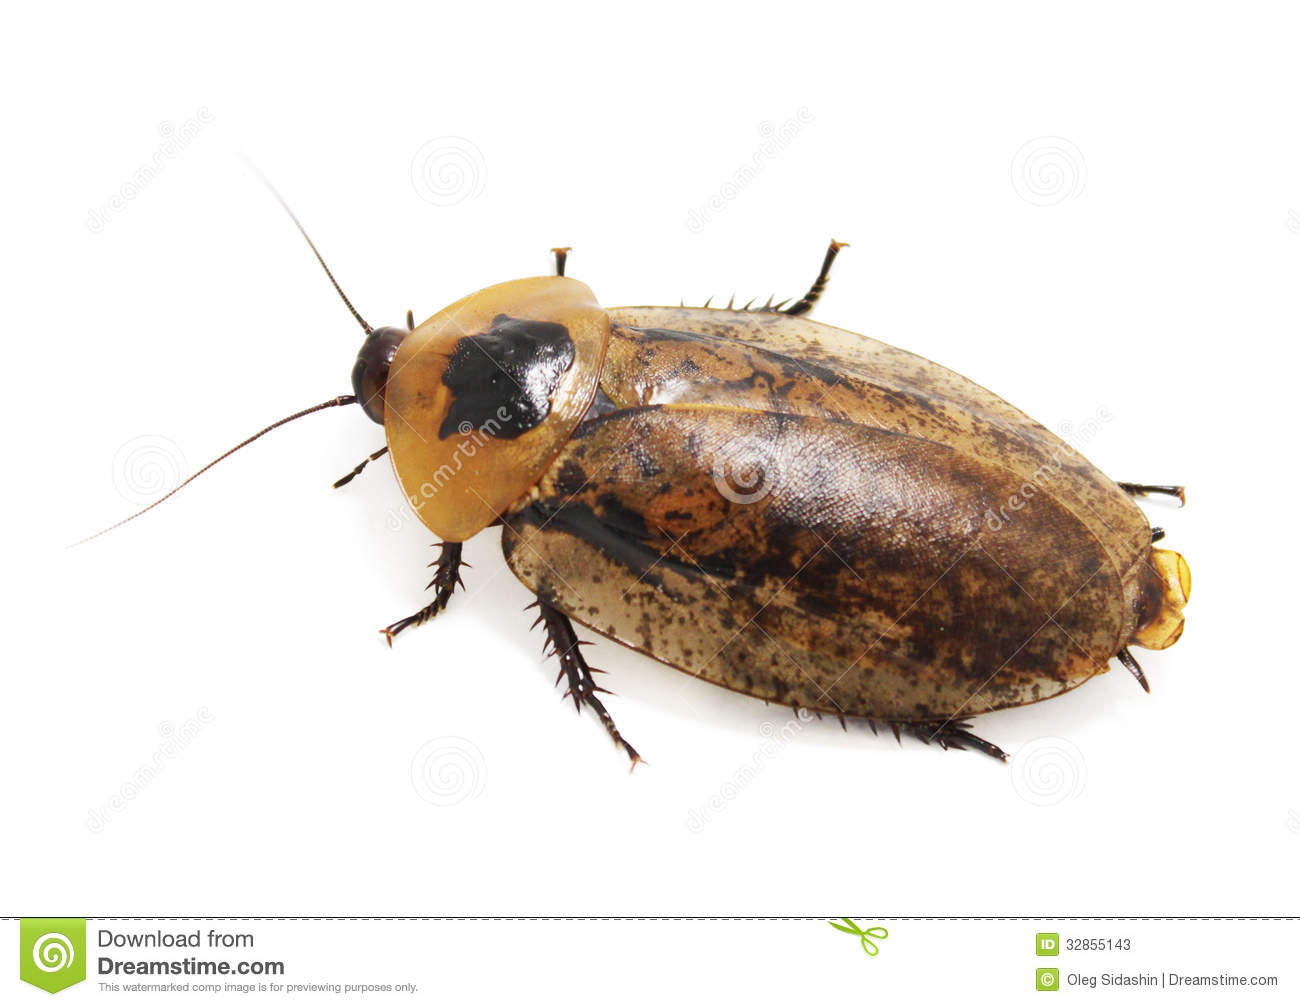 Giant Cockroach (Blaberus) ISOLATED Stock Photos - Image: 32855143: dreamstime.com/stock-photos-giant-cockroach-blaberus-isolated...